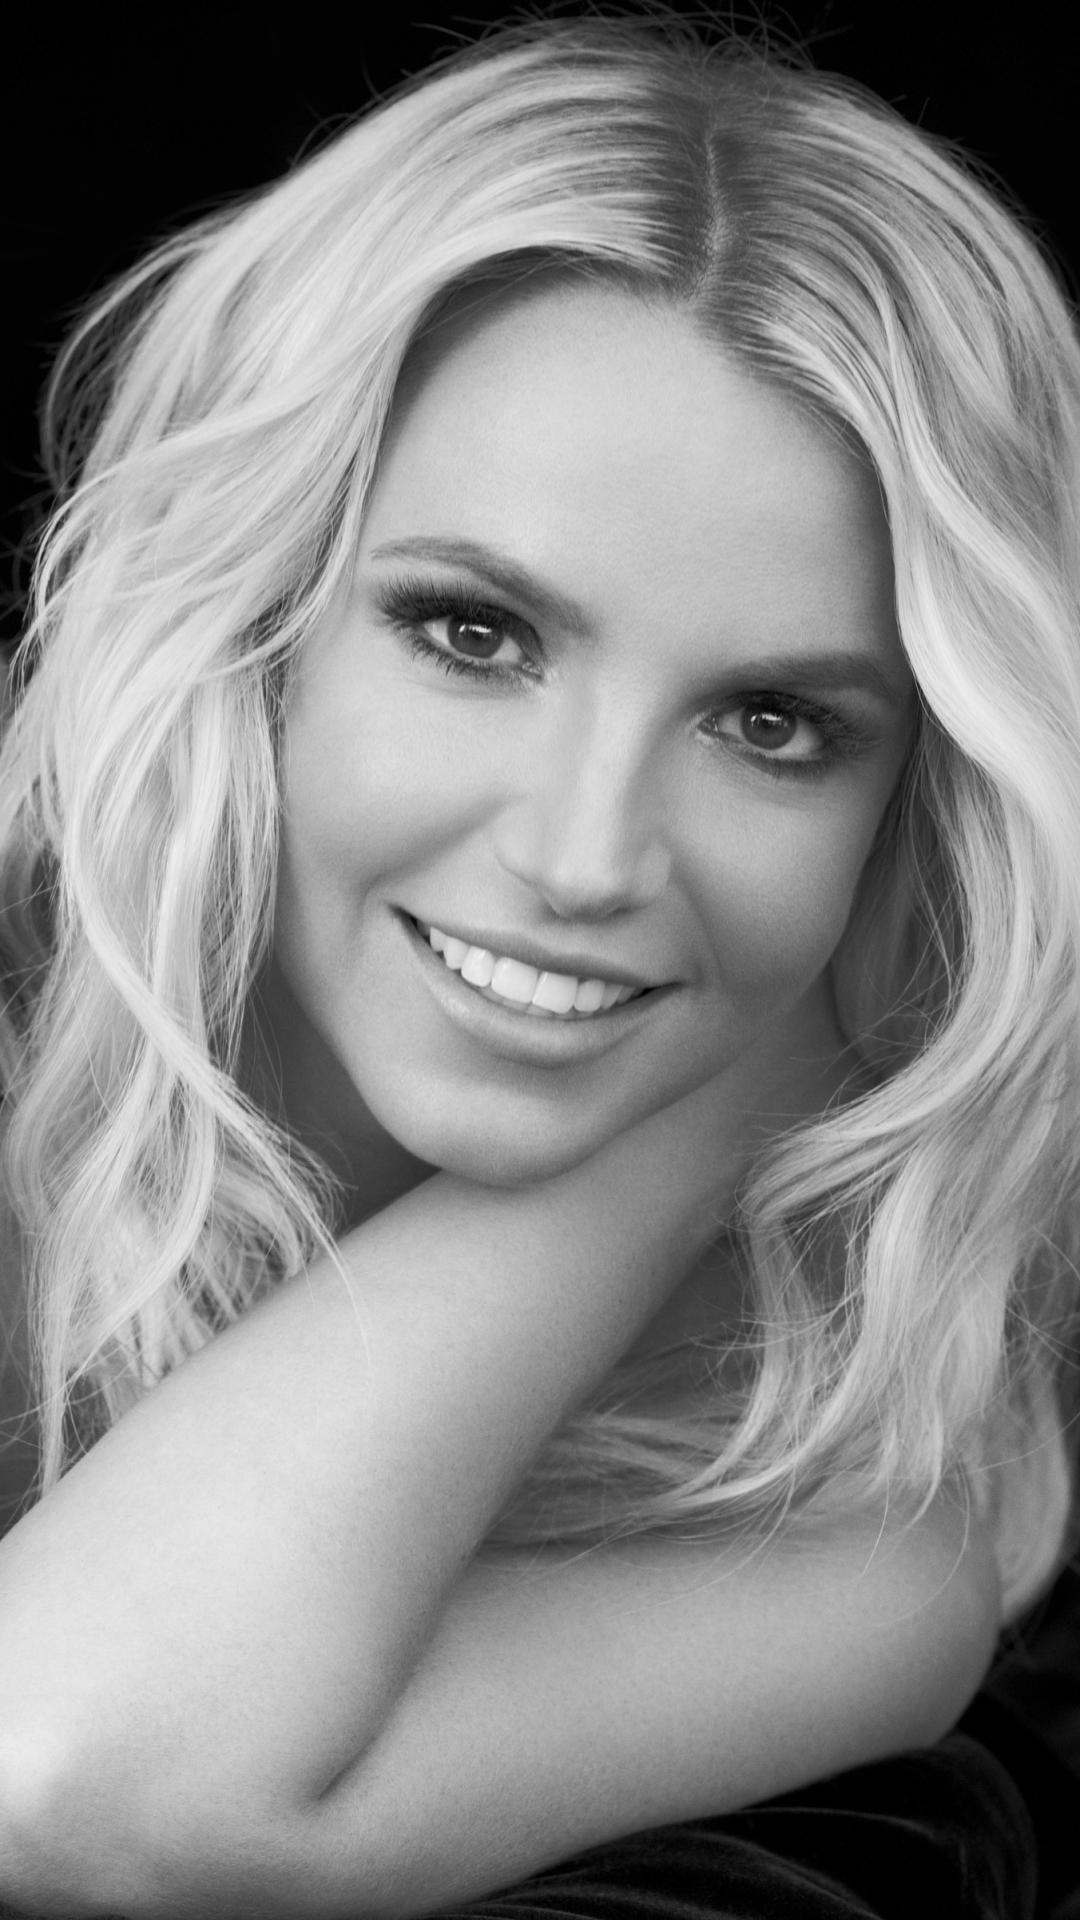 Britney Spears Phone Wallpapers Wallpaper Cave